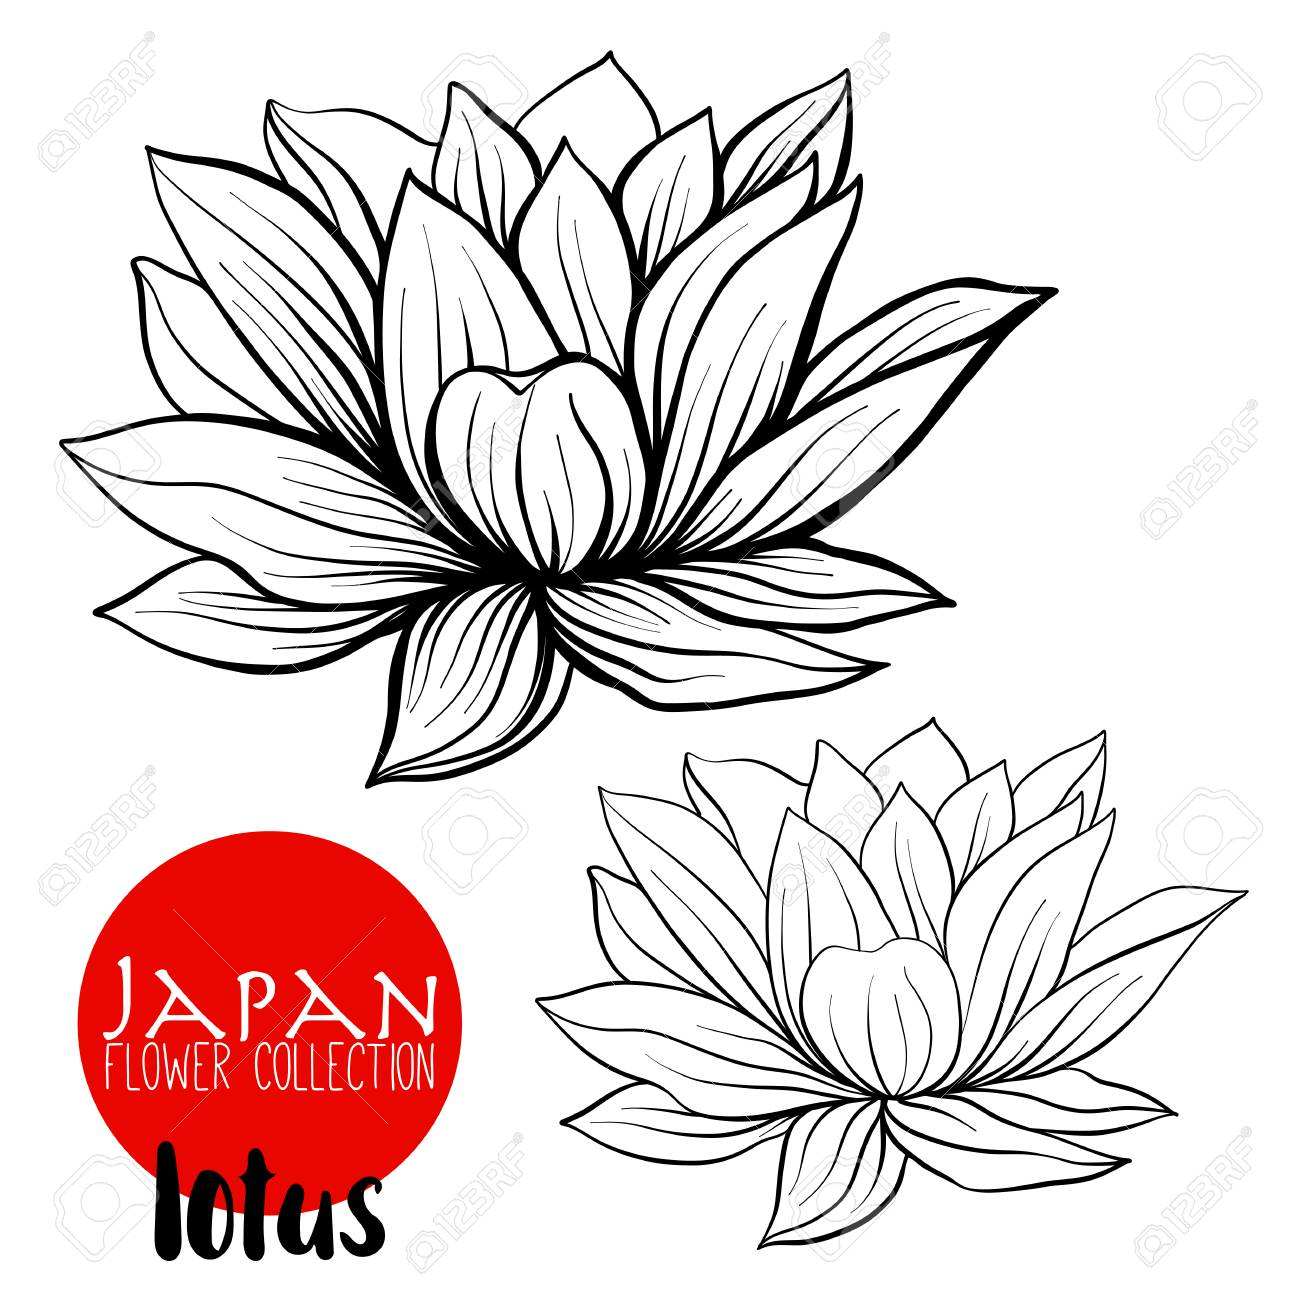 Japanese lotus flower drawing at getdrawings free for personal 1300x1300 lotus flowers stock line vector illustration botanic flowers izmirmasajfo